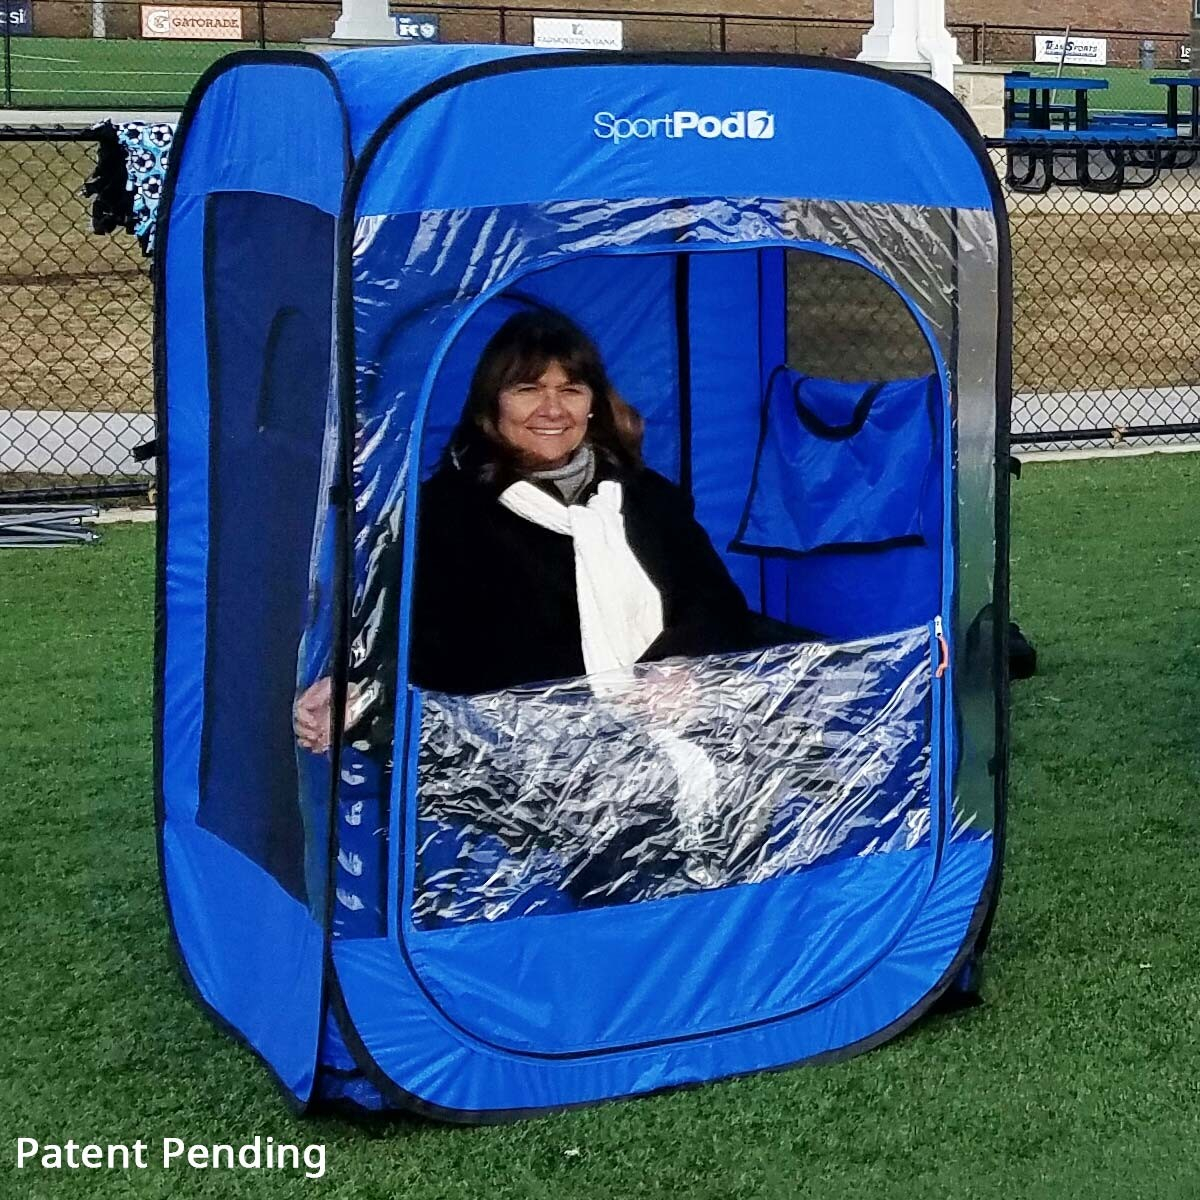 office chair price wheelchair ramp solopod™ undercover™ all weather sportpod™ pop up tent